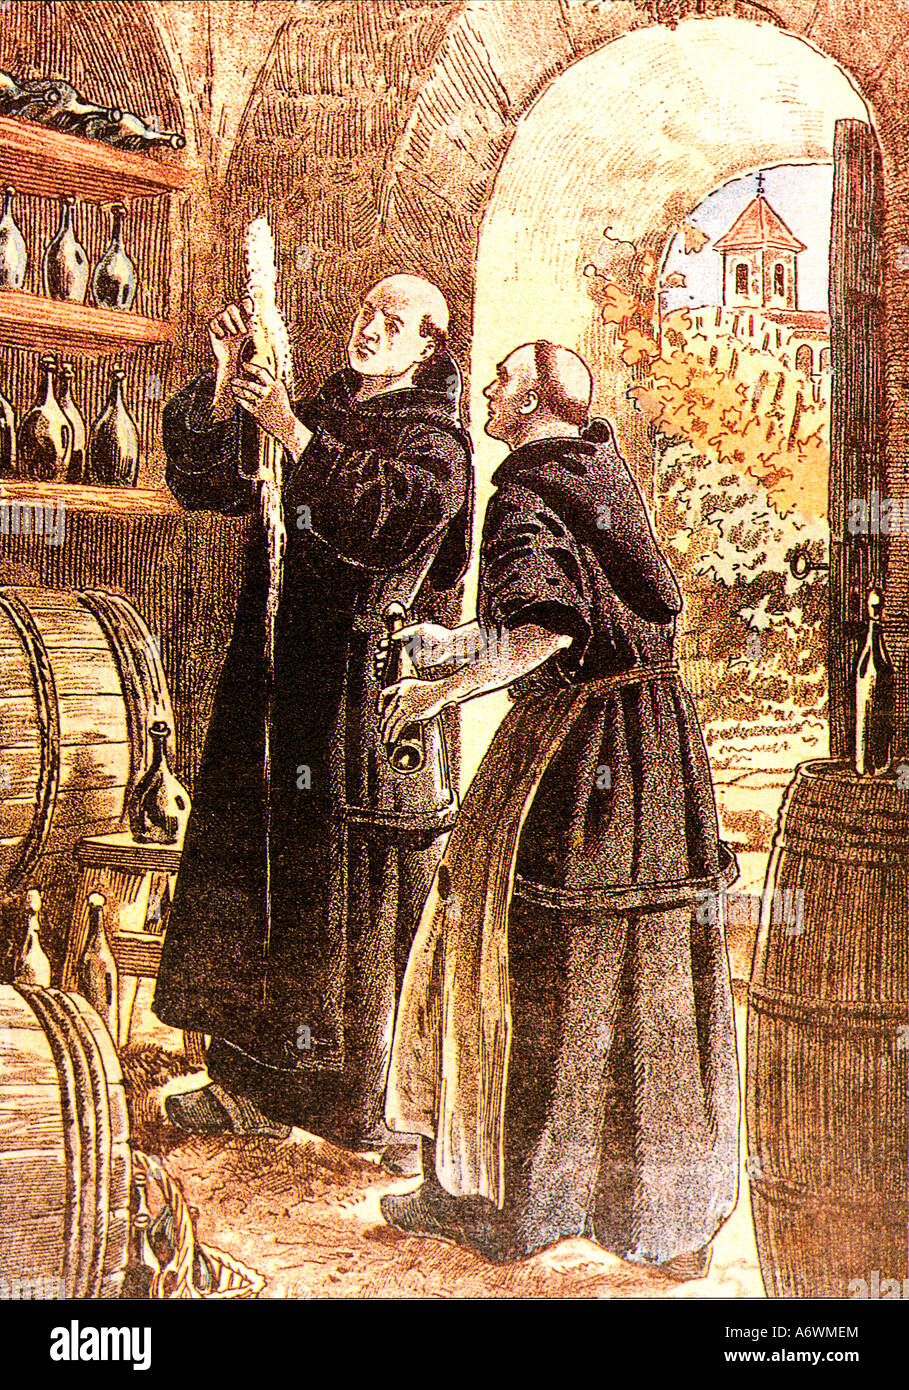 Dom Perignon The eponymous monk who died in 1715 and was an innovator in  the production of Champagne